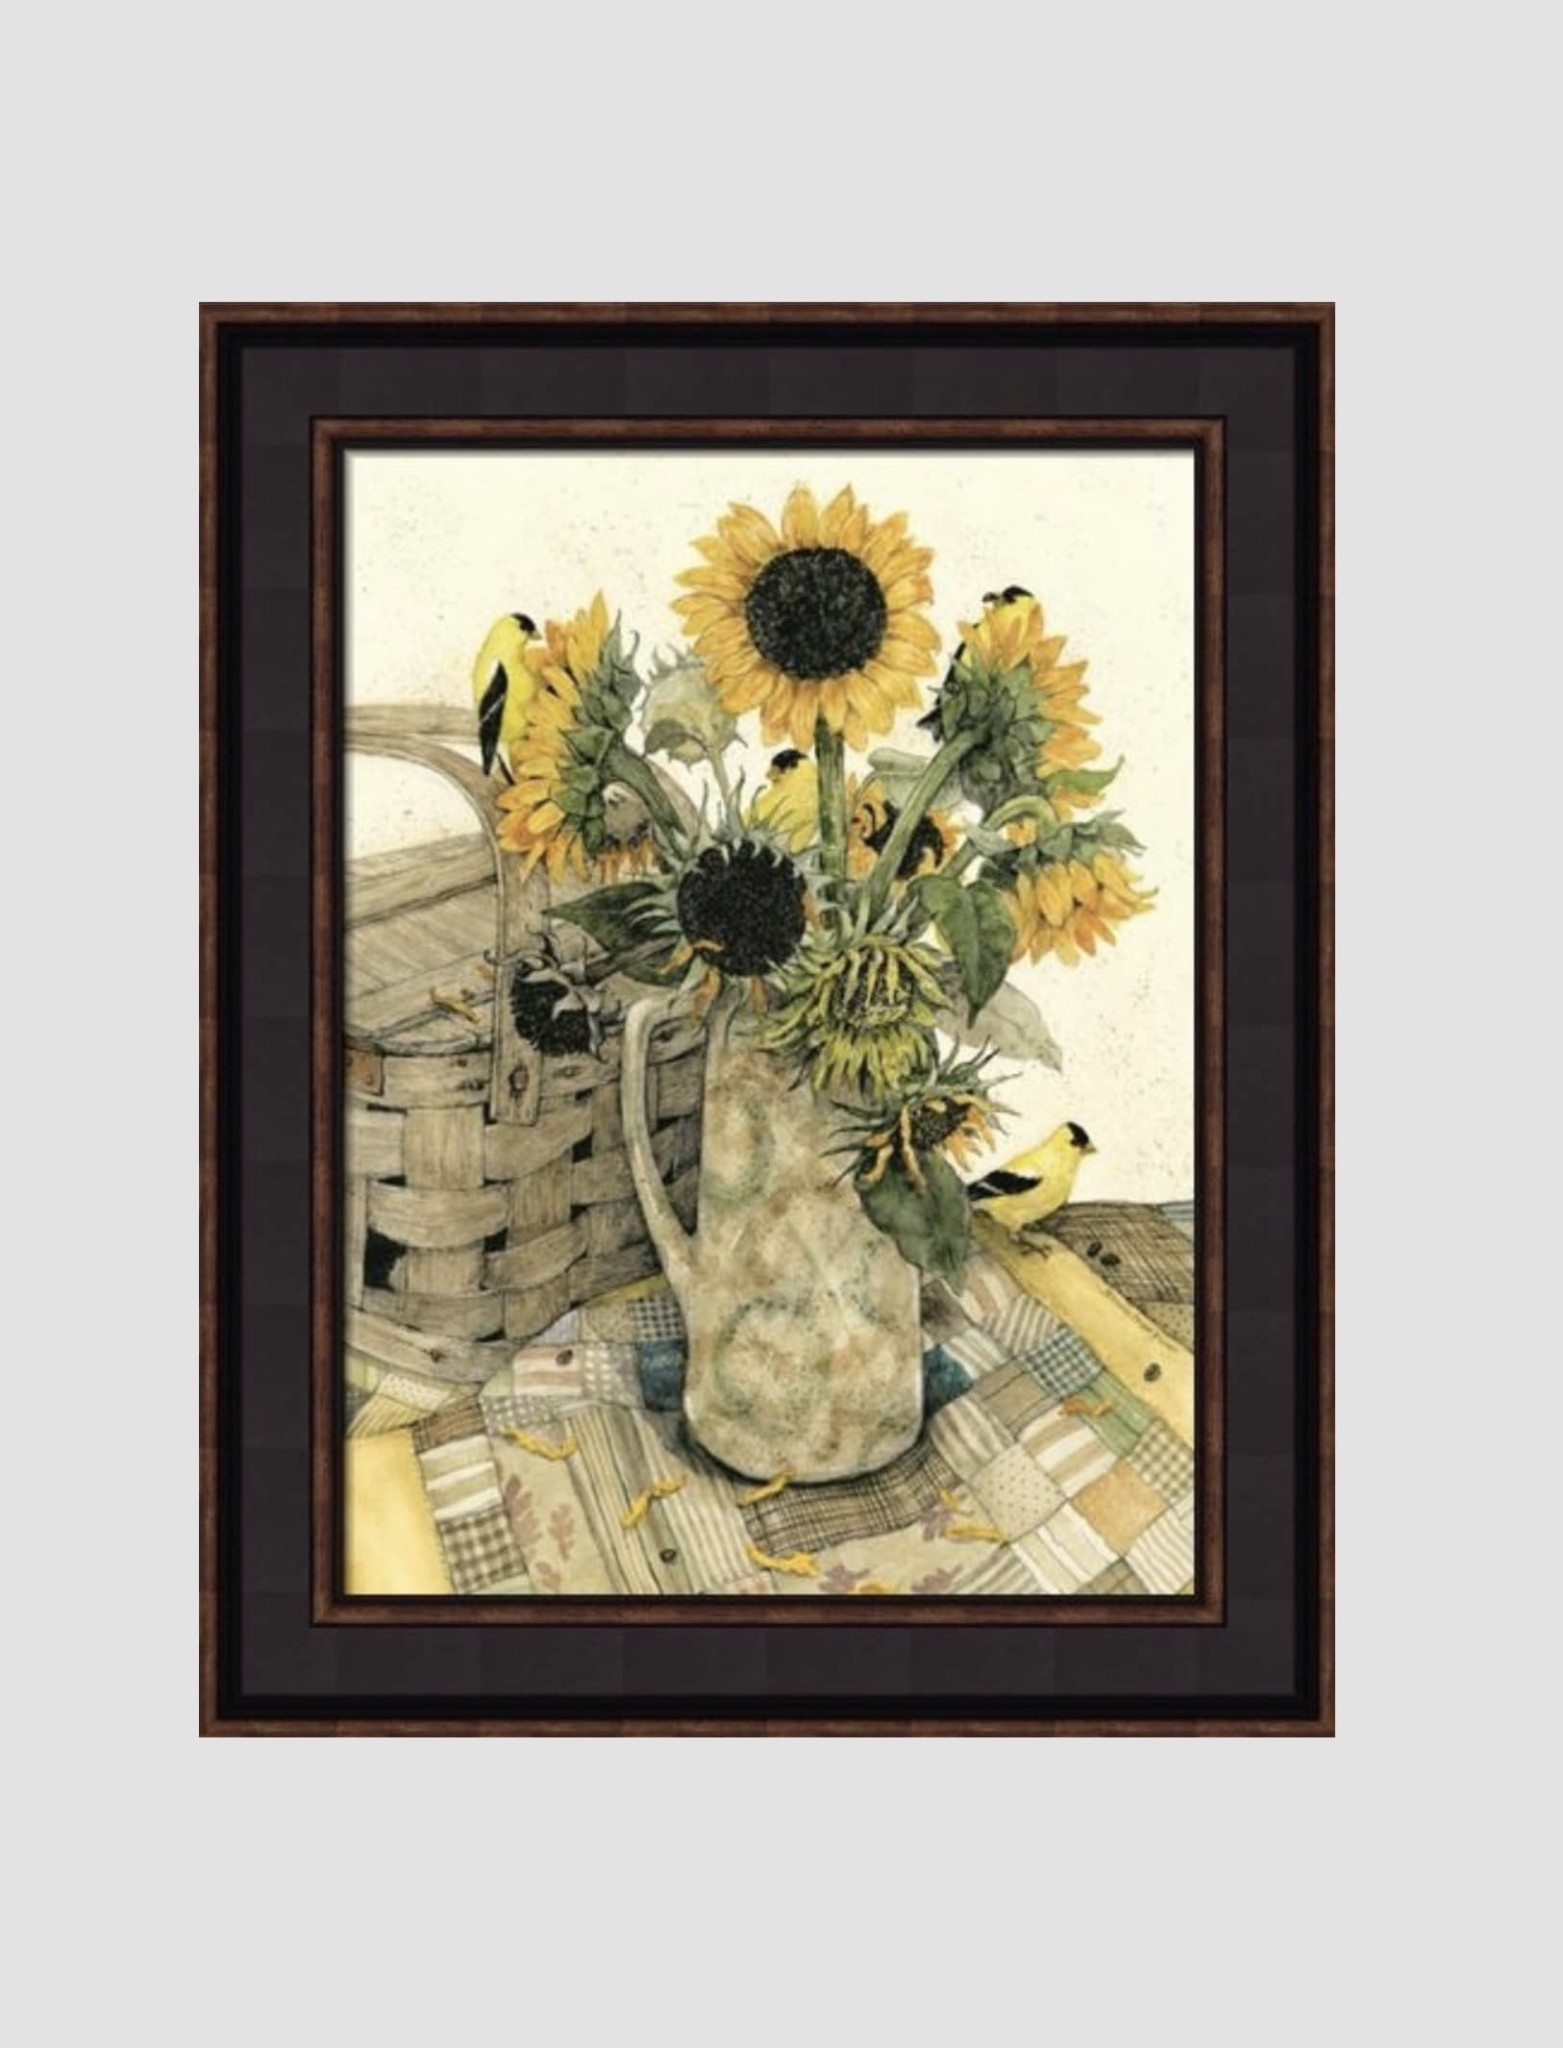 Bonnie Fisher Country Sunflowers by Bonnie Fisher - 16 x 12